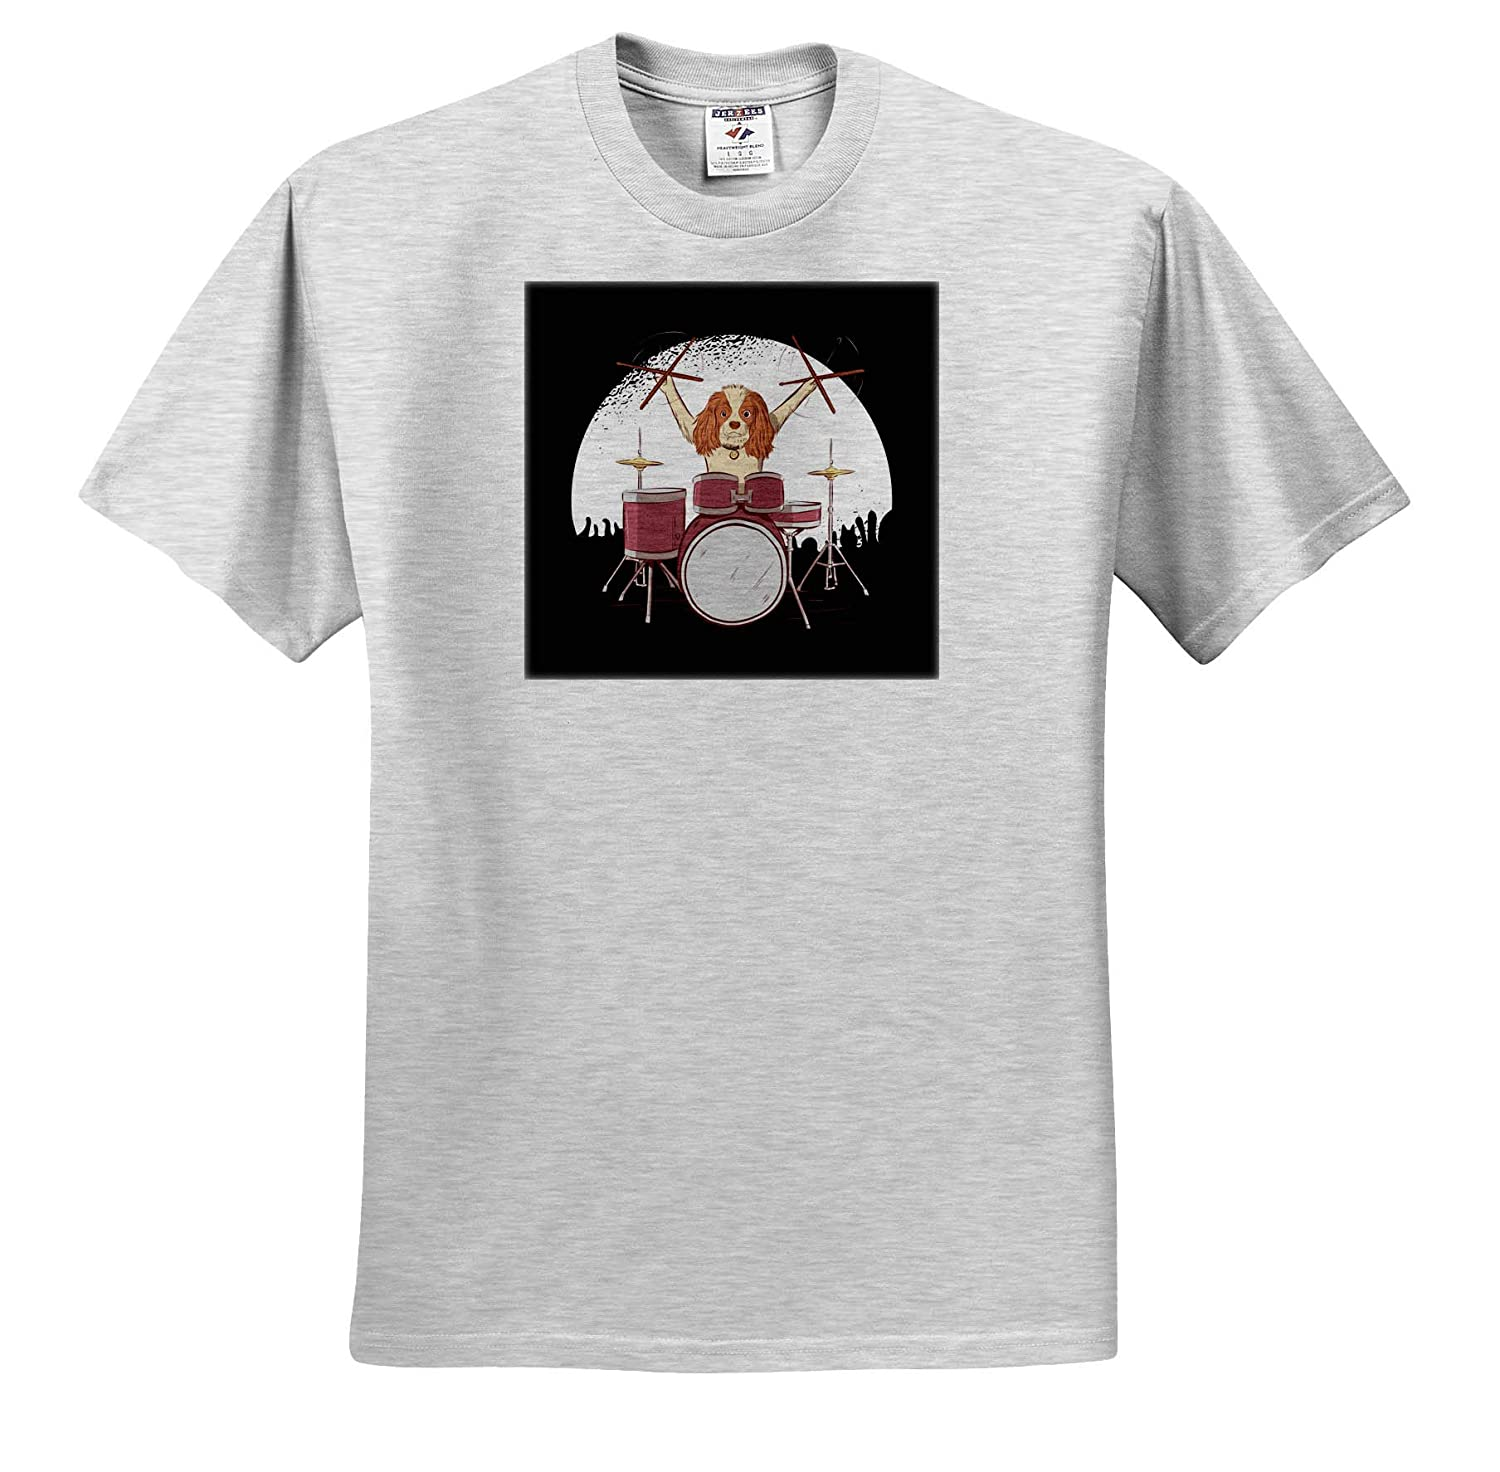 Cavalier King Charles Spaniel Dog Drummer Player T-Shirts 3dRose Sven Herkenrath Dogs